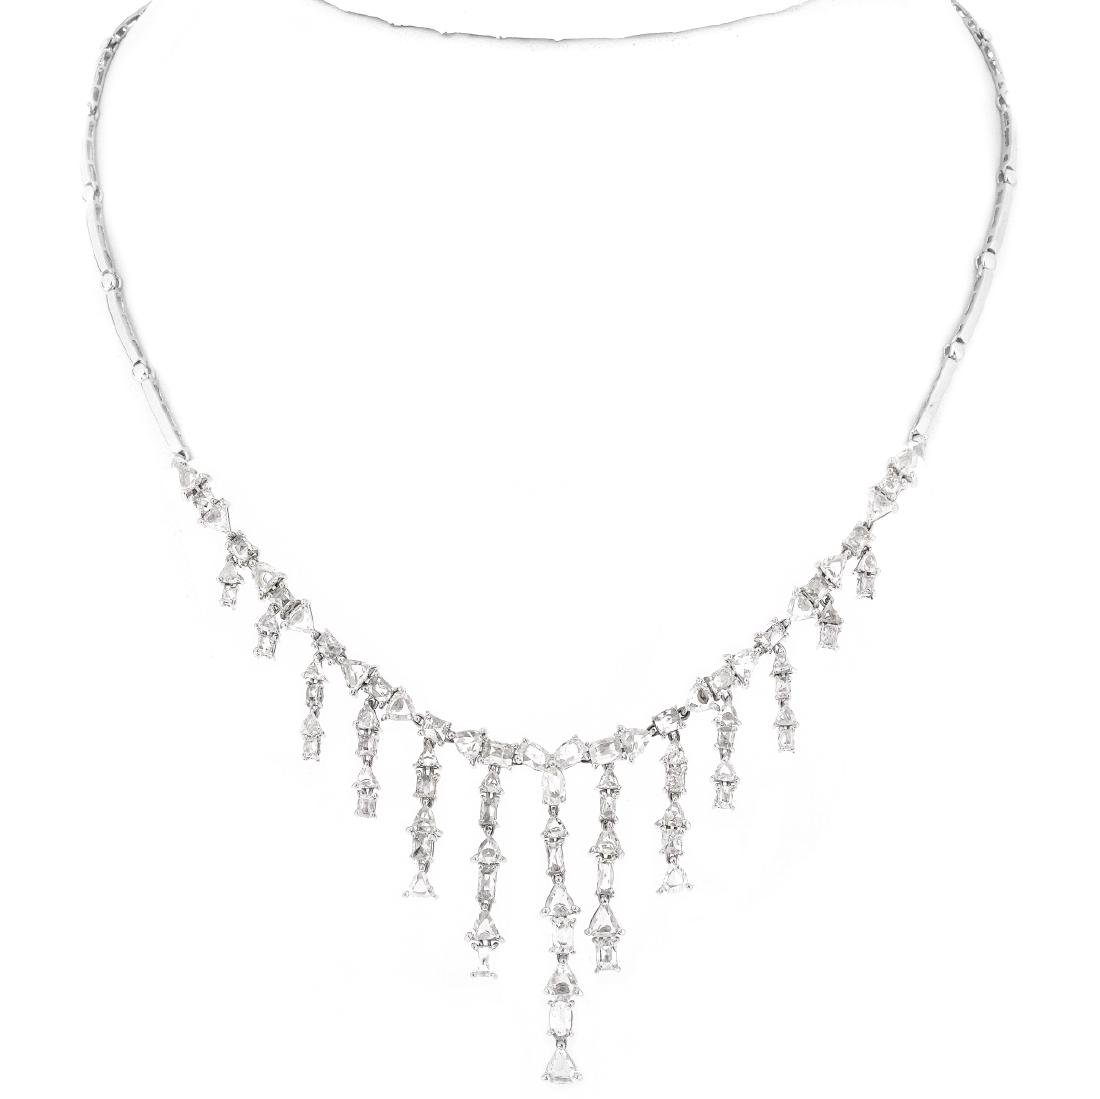 8.42ct Diamond and 18K Gold Necklace